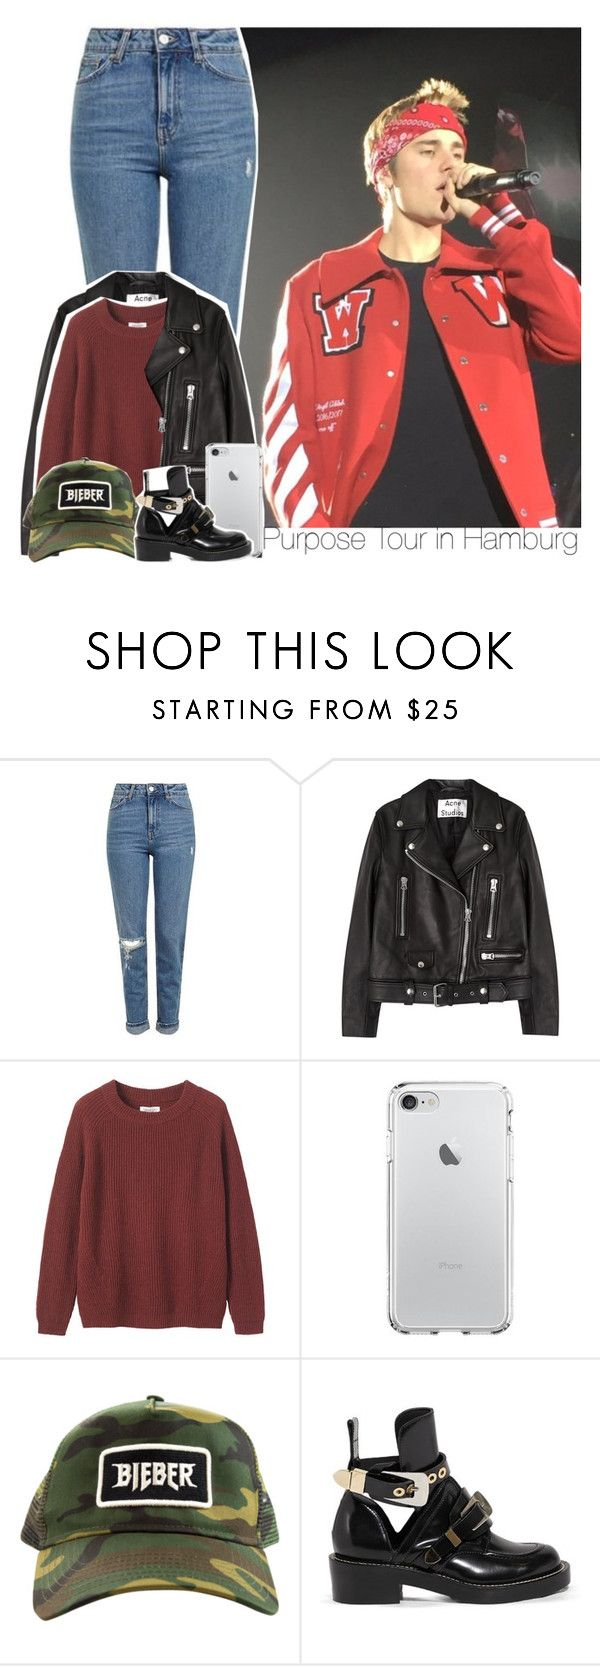 """Purpose Tour in Hamburg"" by chocapiick ❤ liked on Polyvore featuring Topshop, Acne Studios, Toast, Balenciaga, JustinBieber, PurposeTour and PurposeTourHamburg"